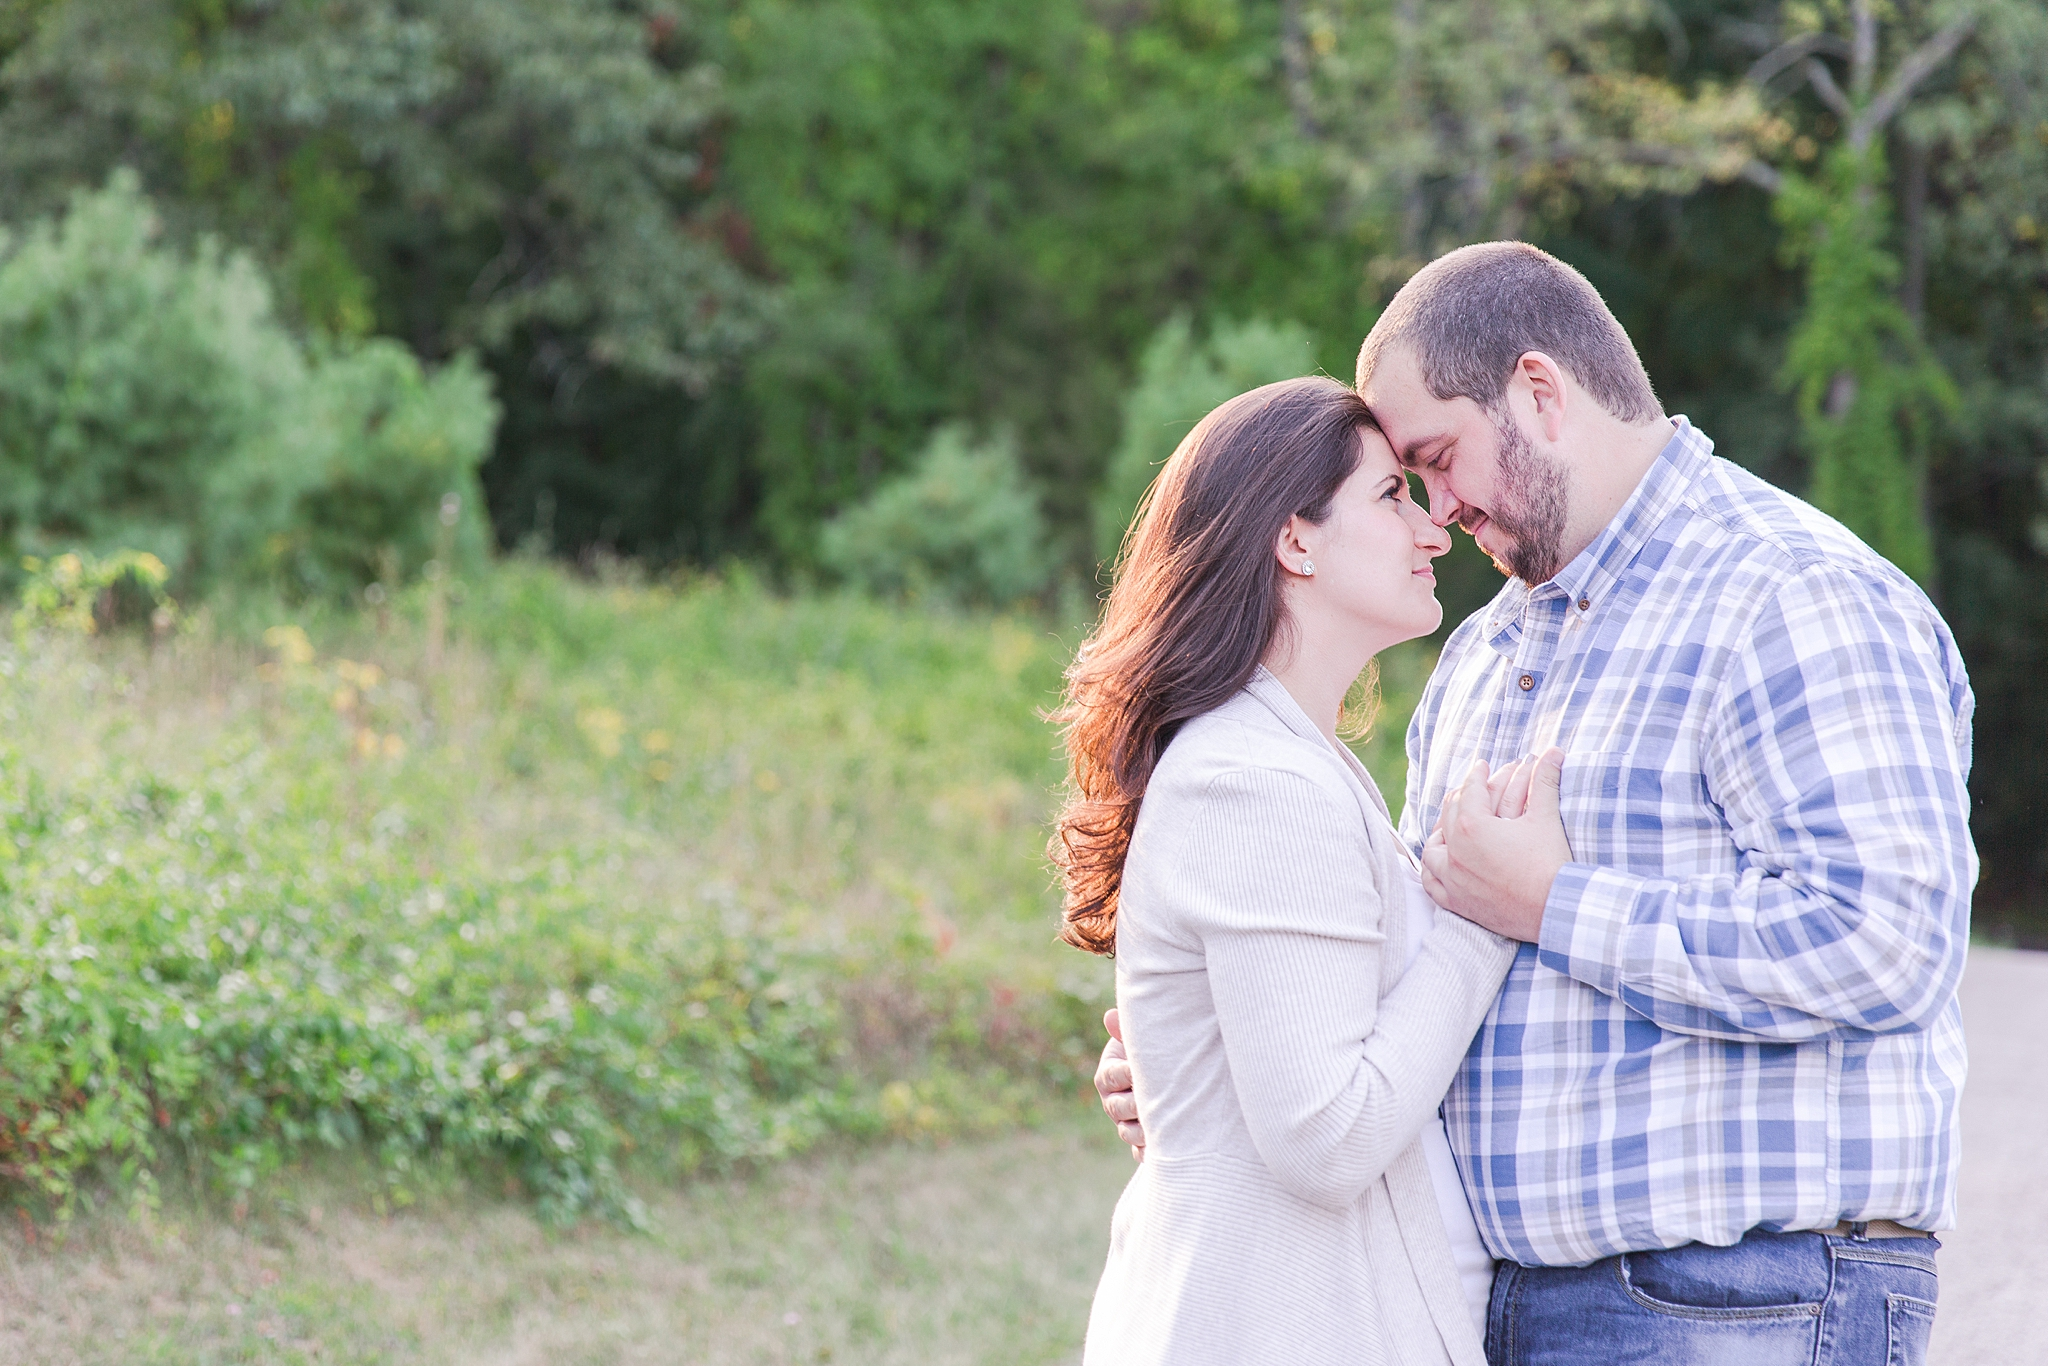 classic-vineyard-engagement-photography-in-lansing-mi-by-courtney-carolyn-photography_0010.jpg